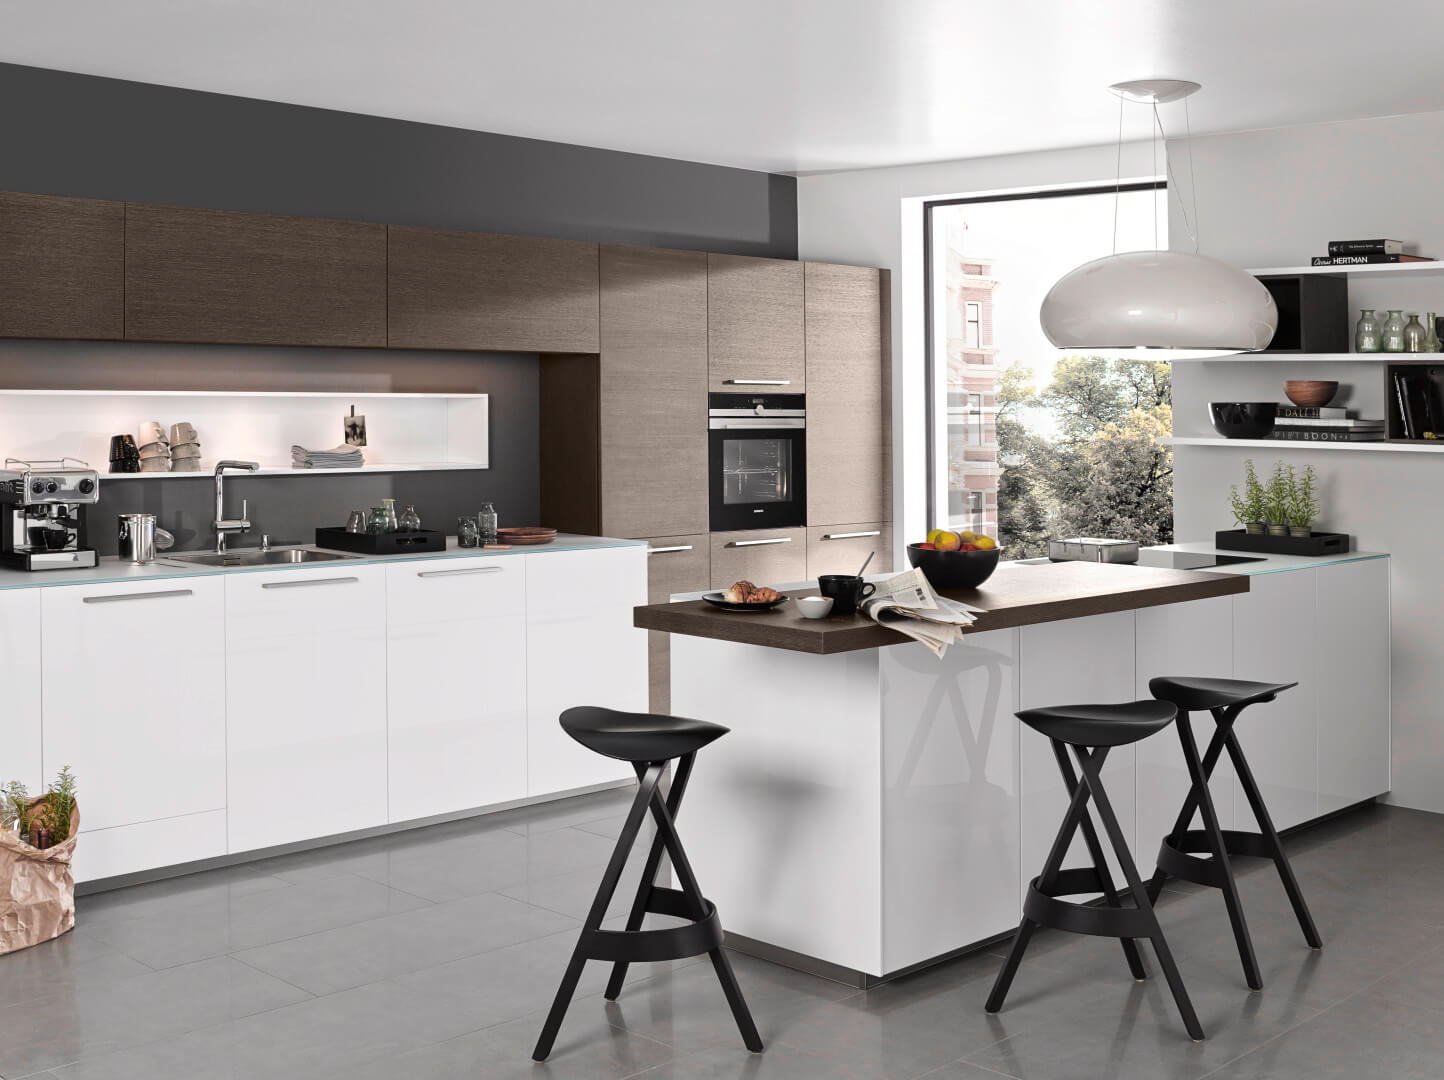 Nolte-Kitchens-Nature-Gallery5